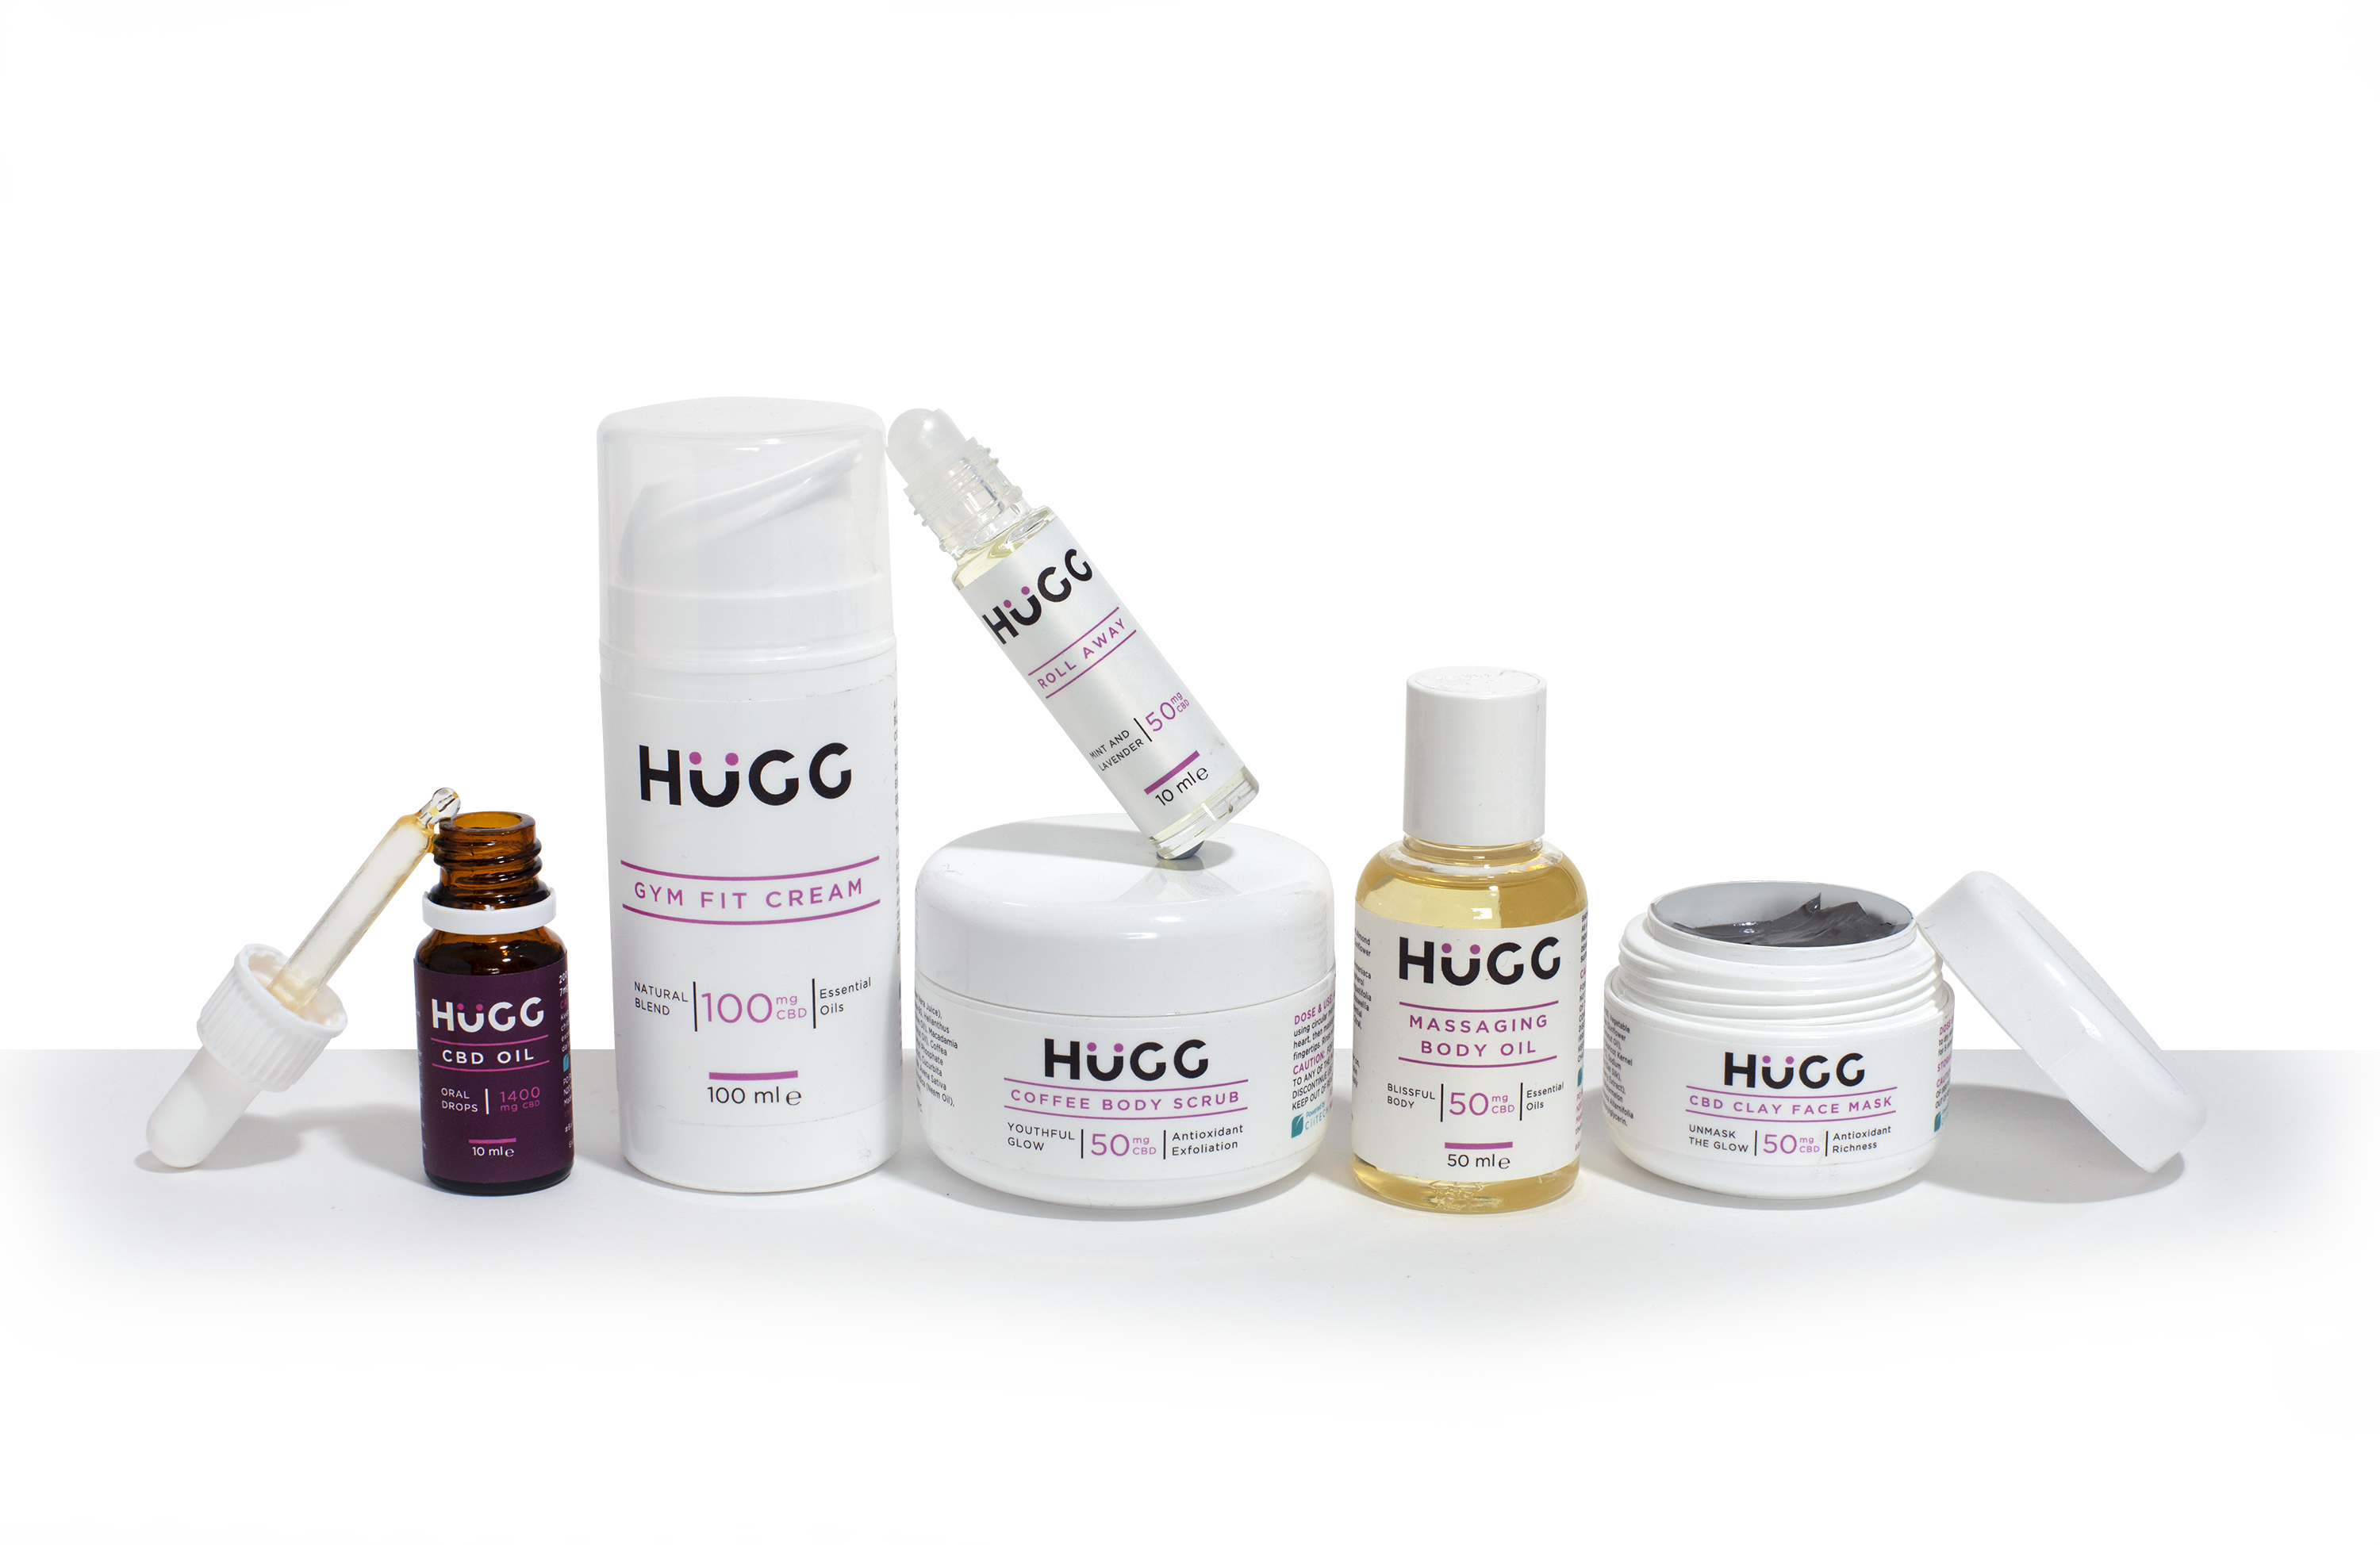 A CiiTECH Brand – The Hugg Co.